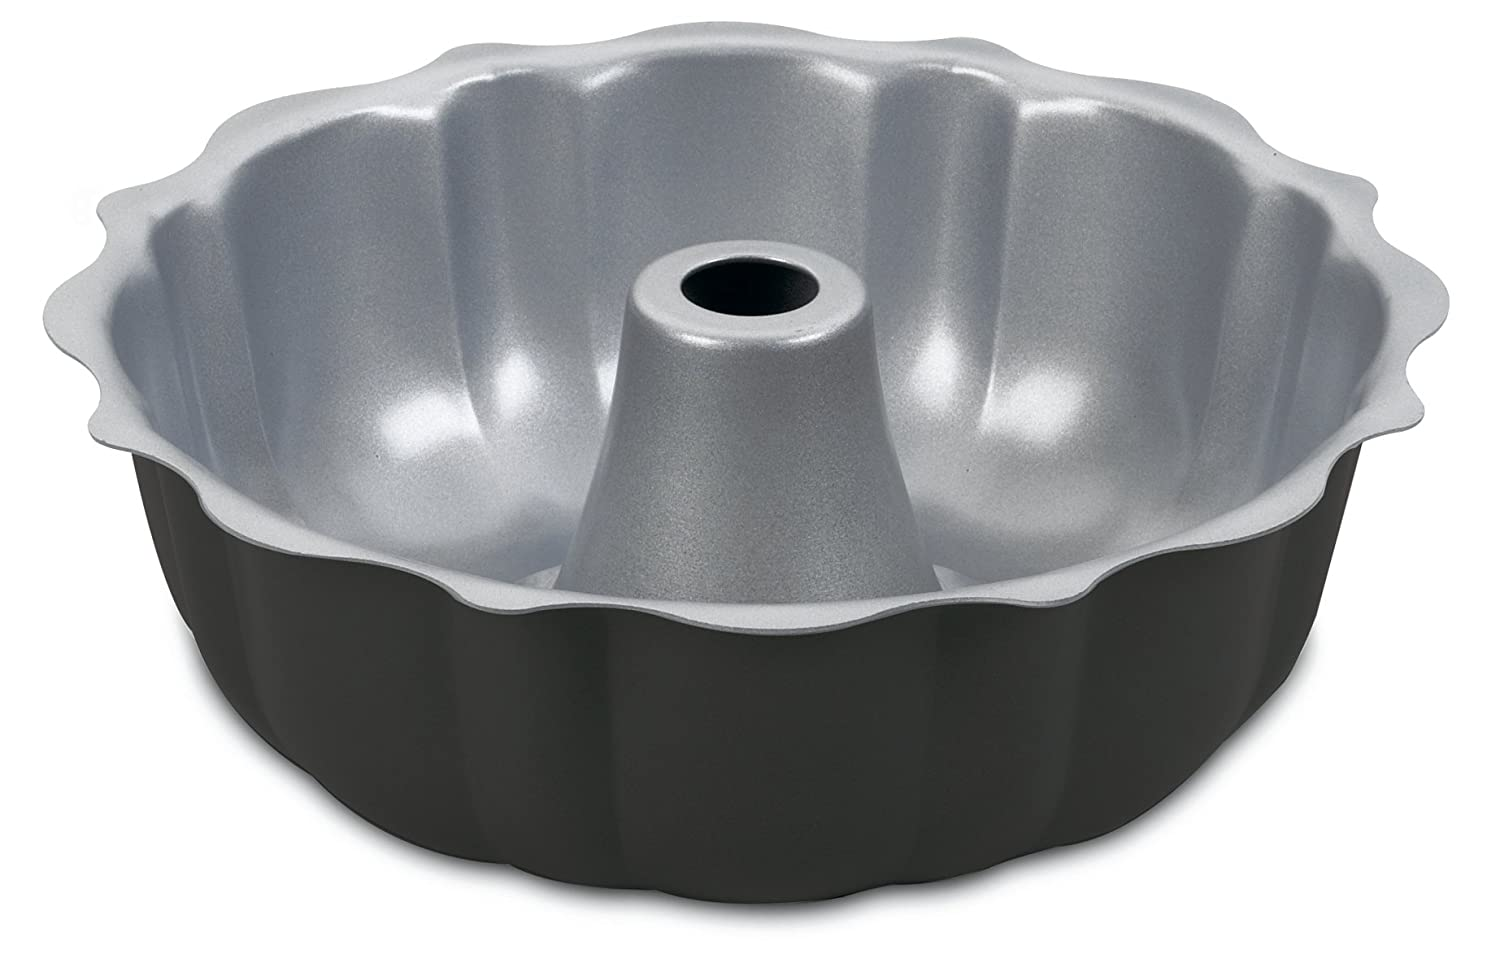 Nonstick bundt pan